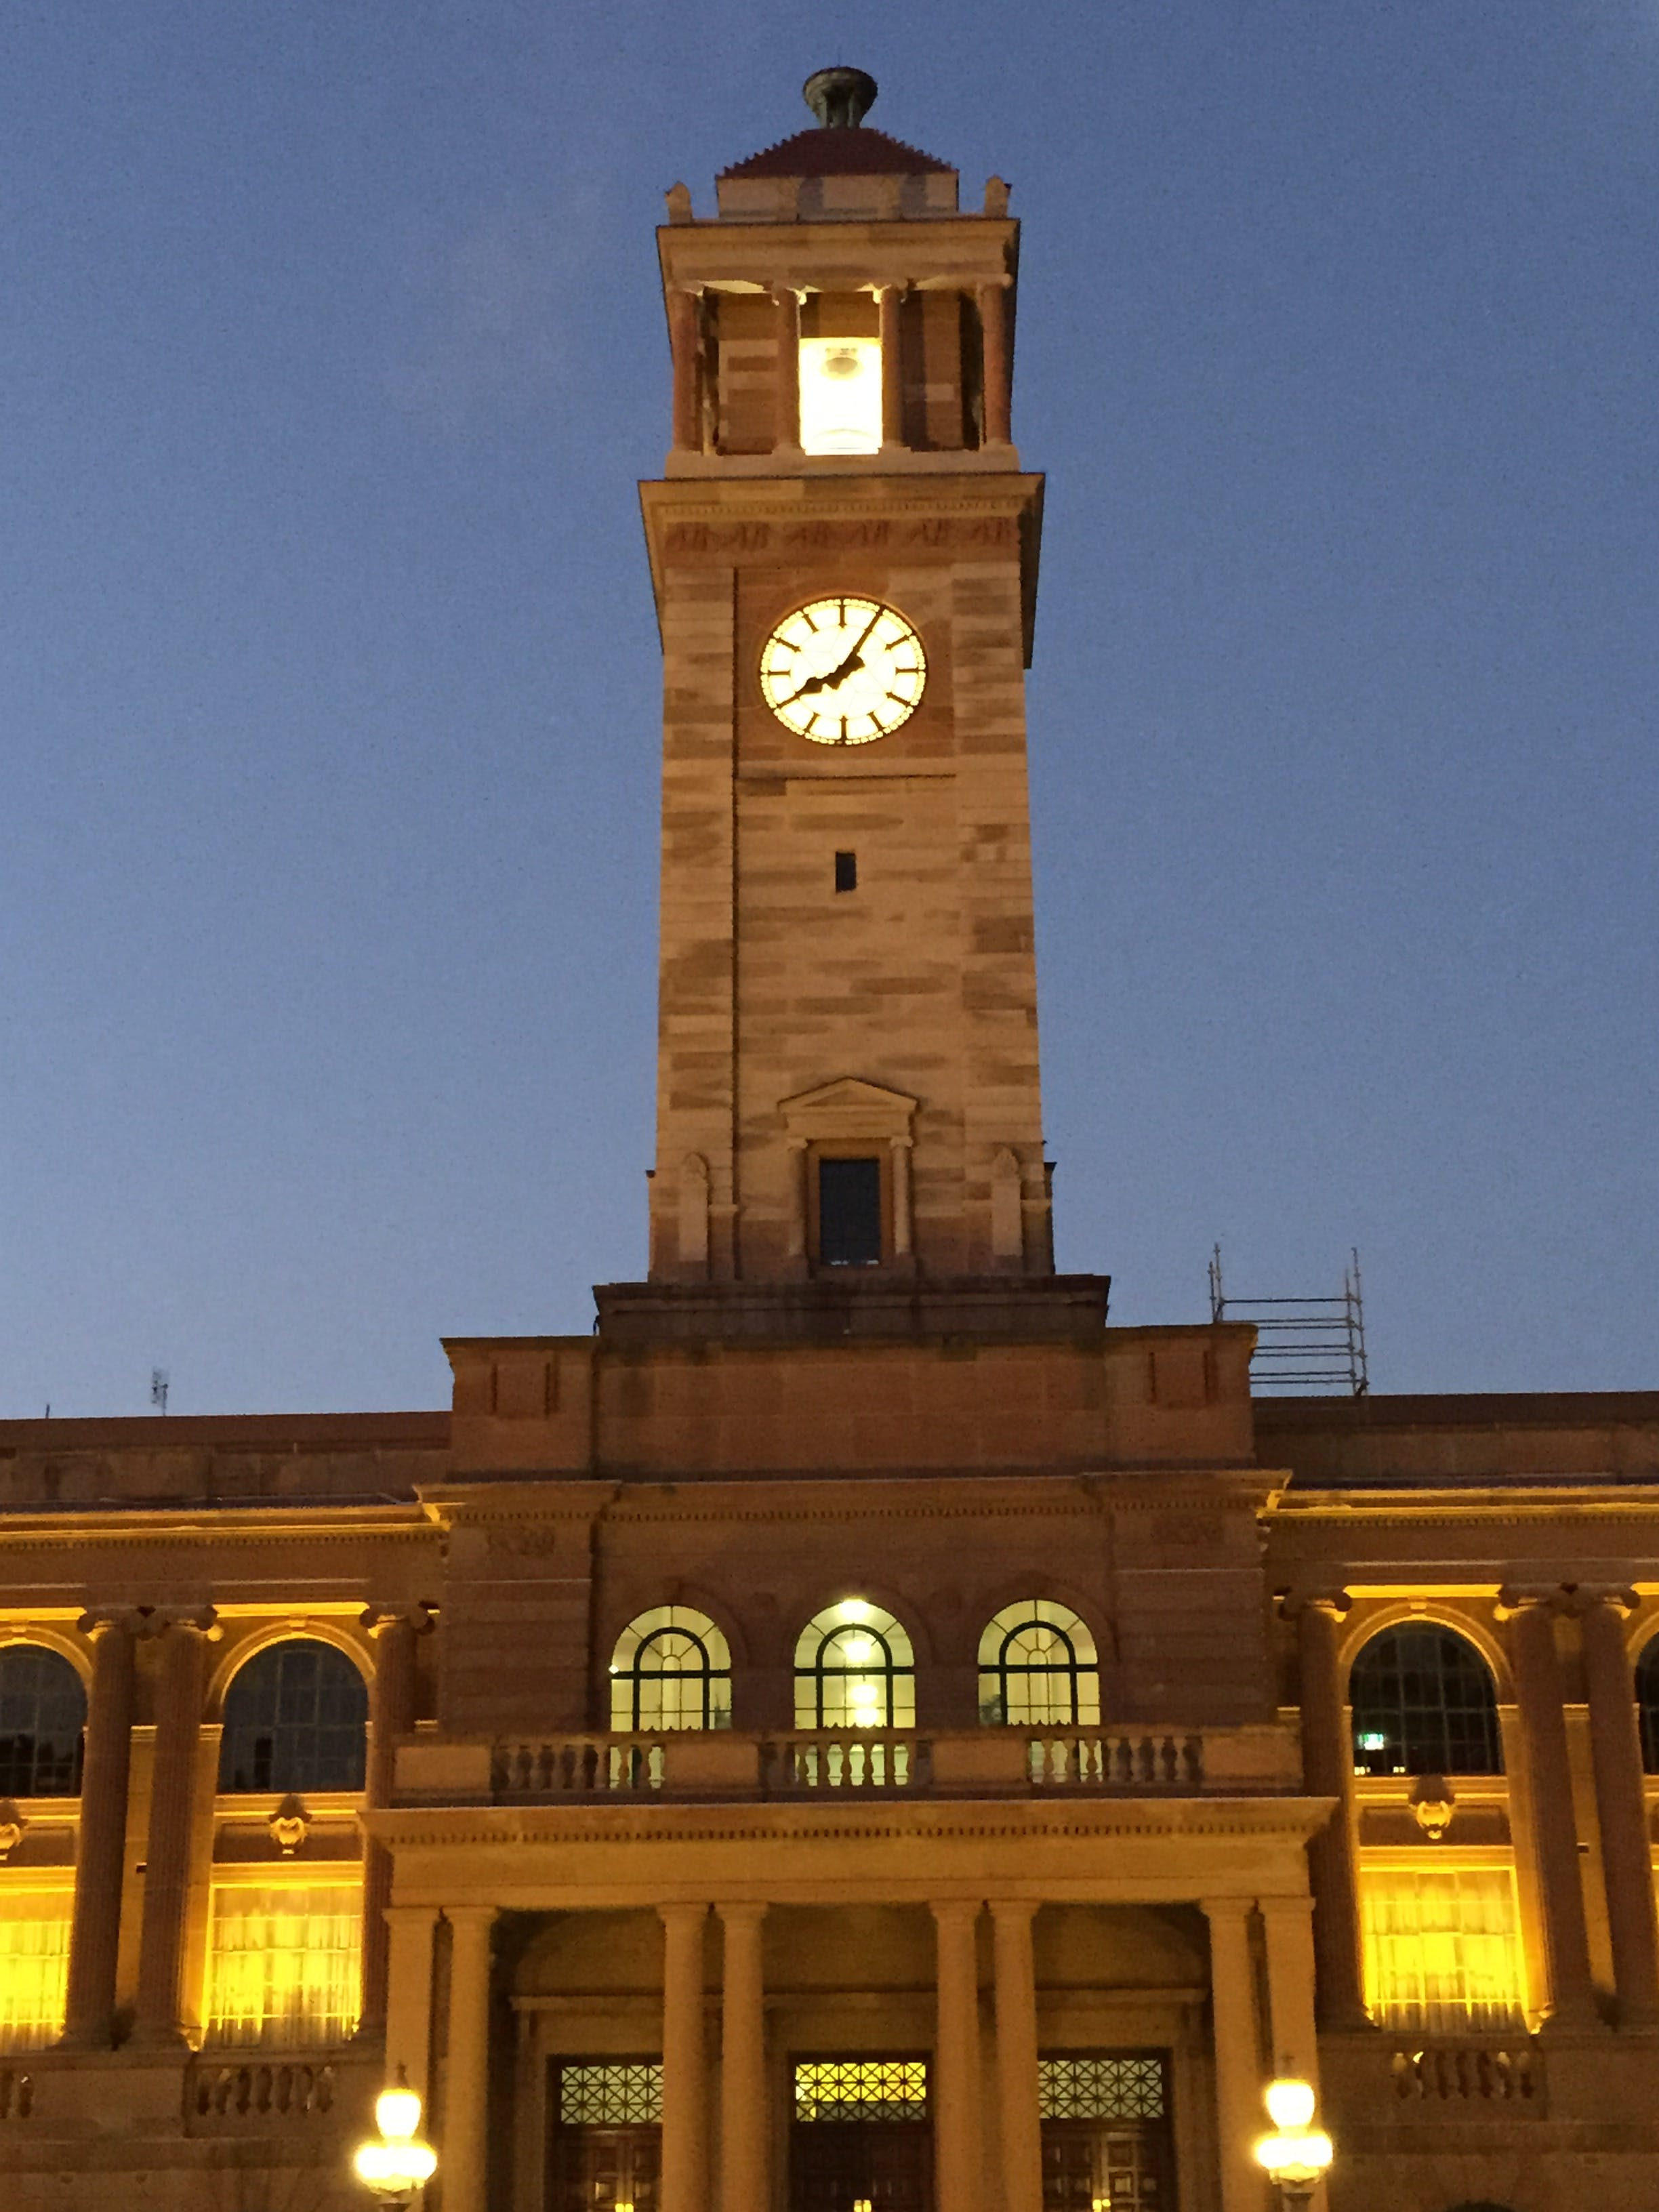 Image of City Hall and the clock tower.